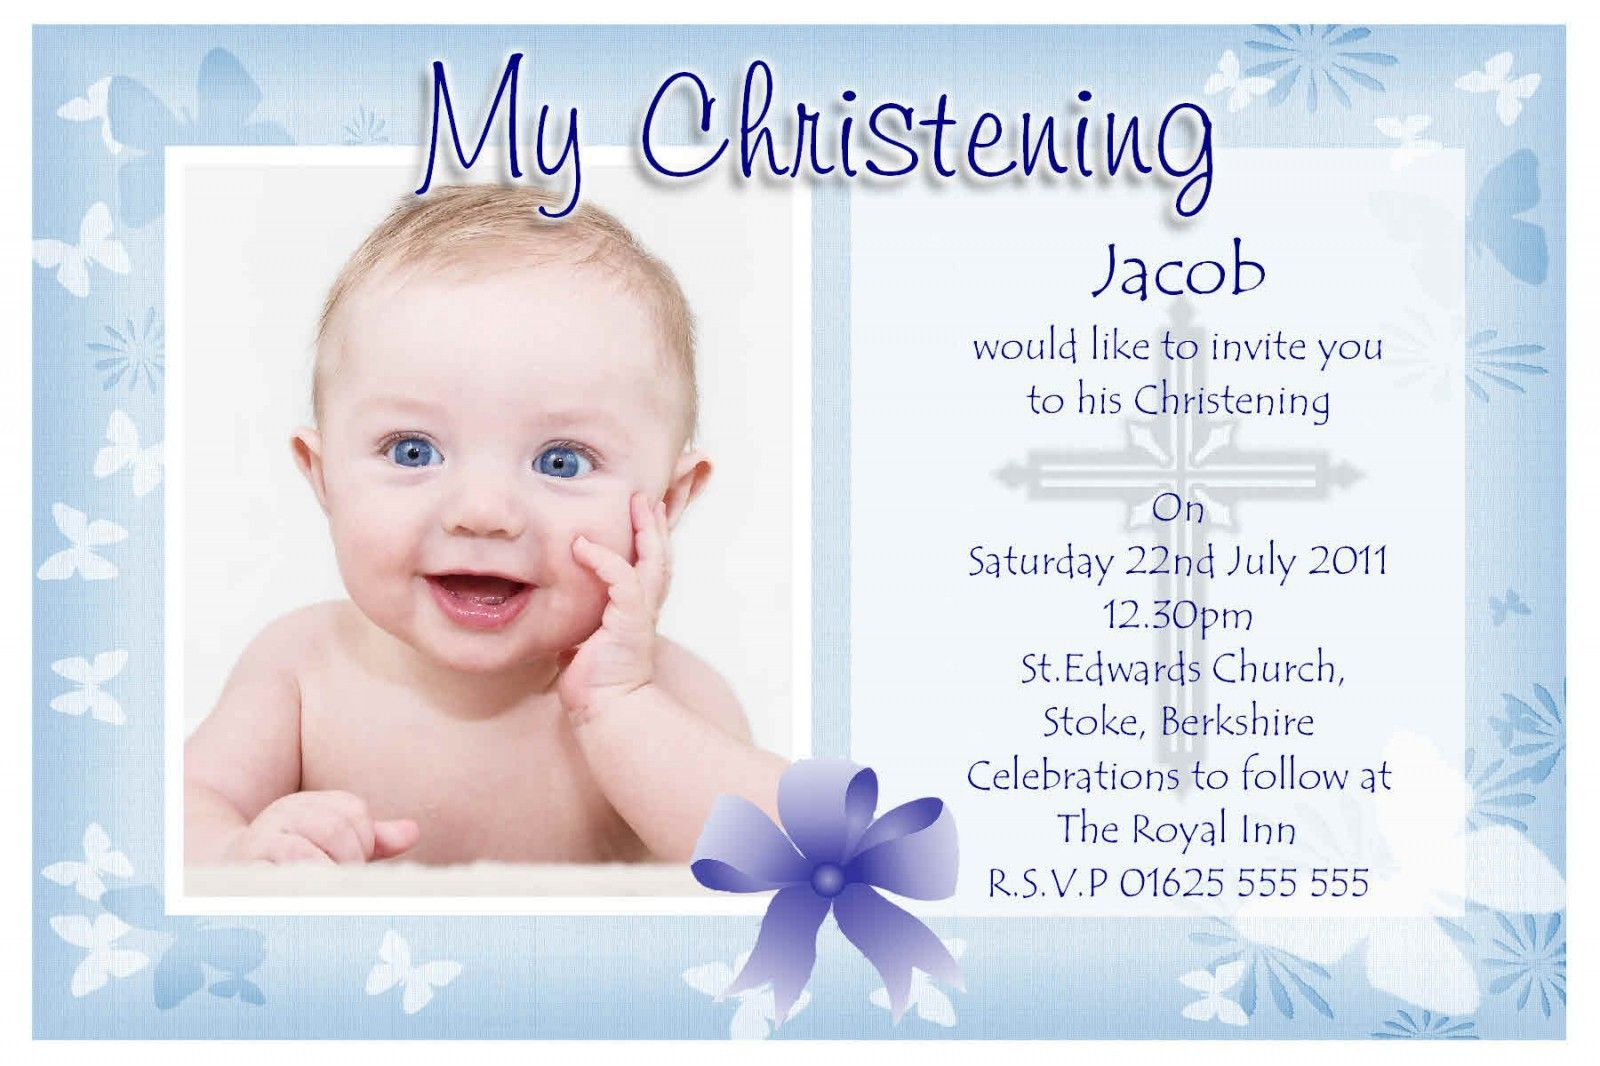 Free Sample Of Editing Photo For Invitation Baptism Google